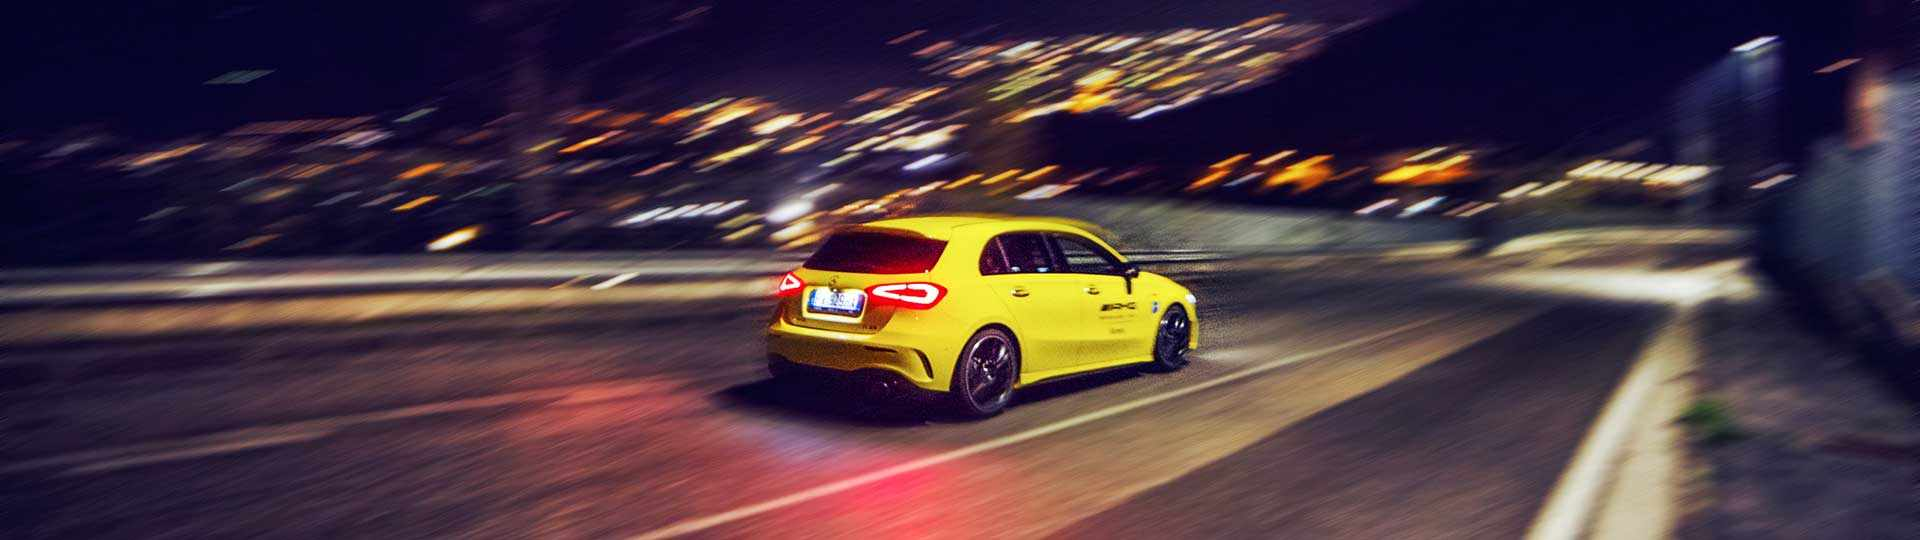 header_amg_35_classe_a_bonera_escape_on_wheels.jpg